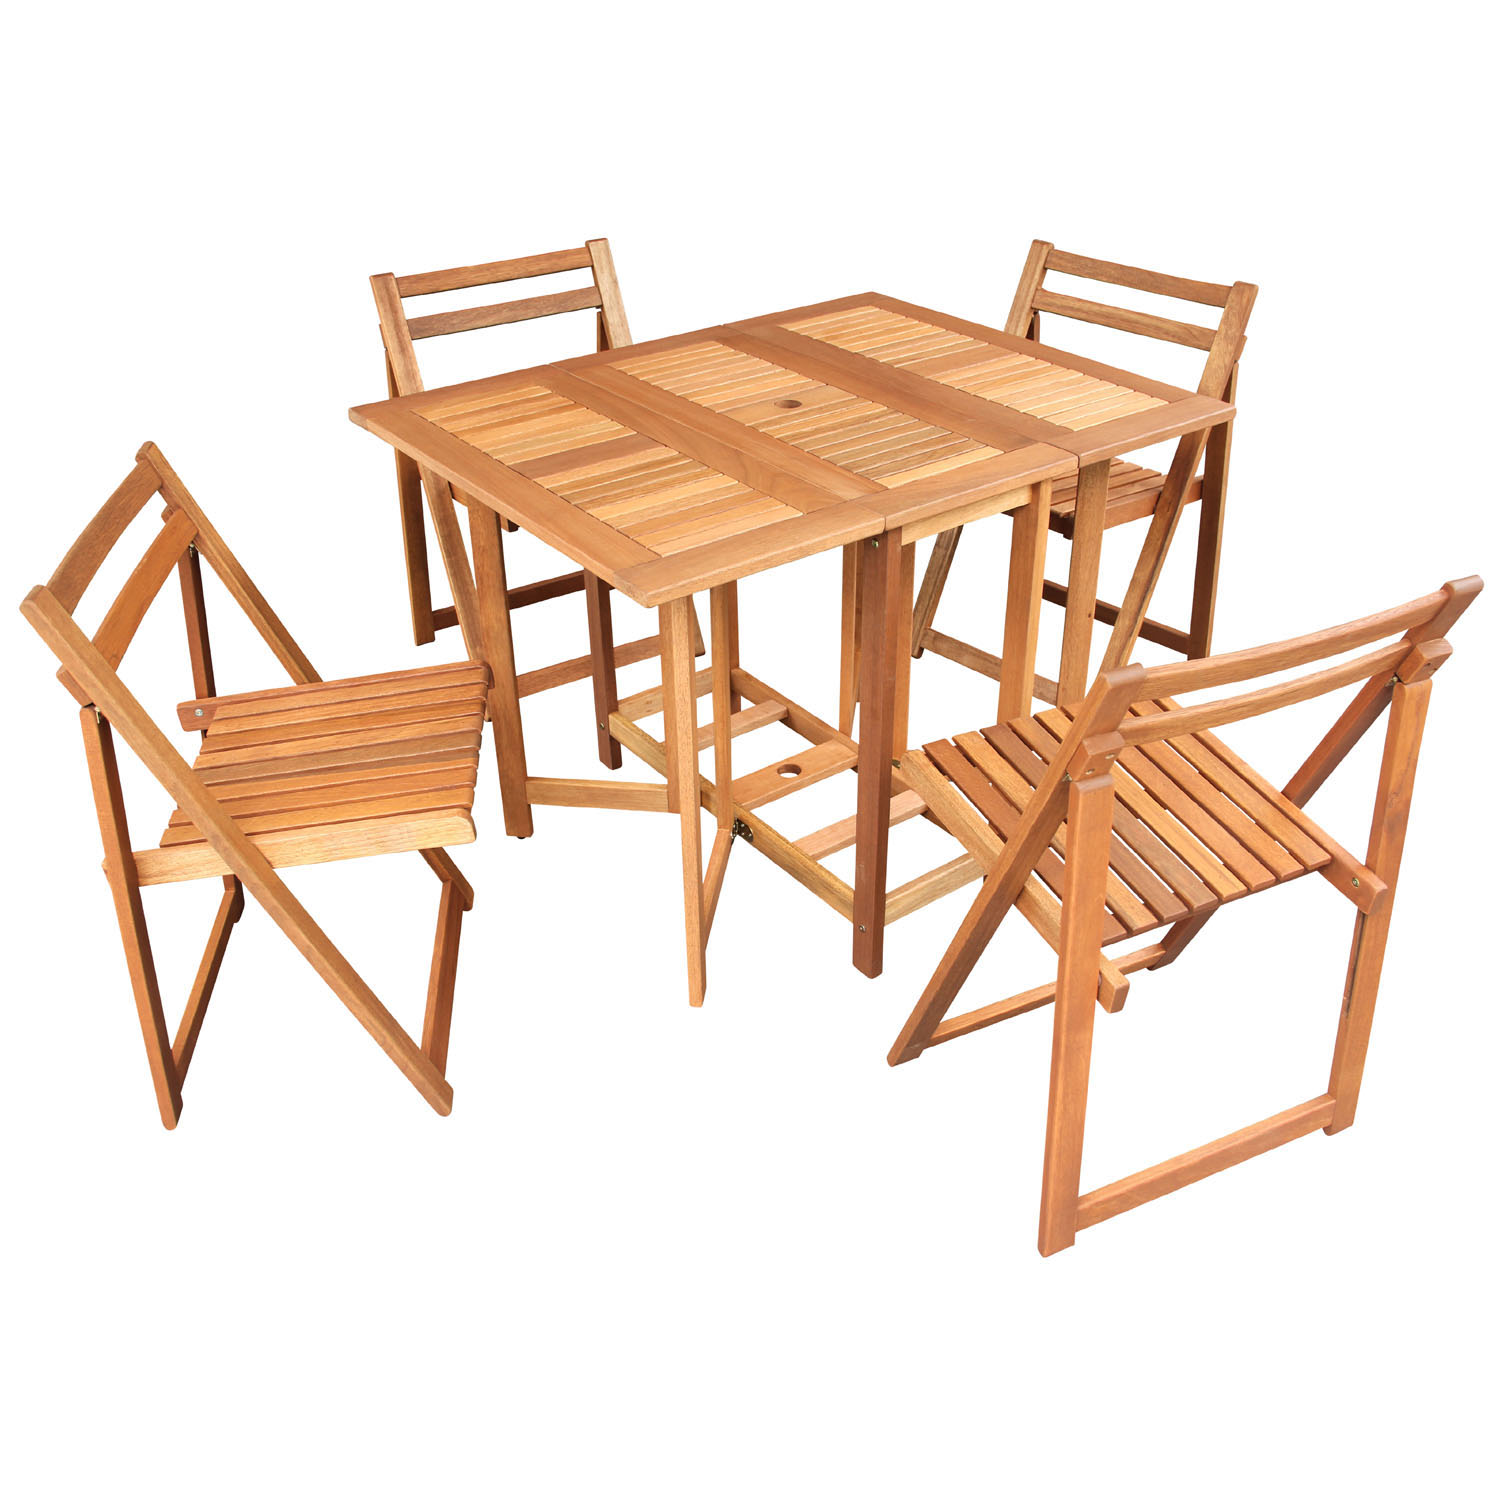 Oslo Hideaway set with 4 chairs